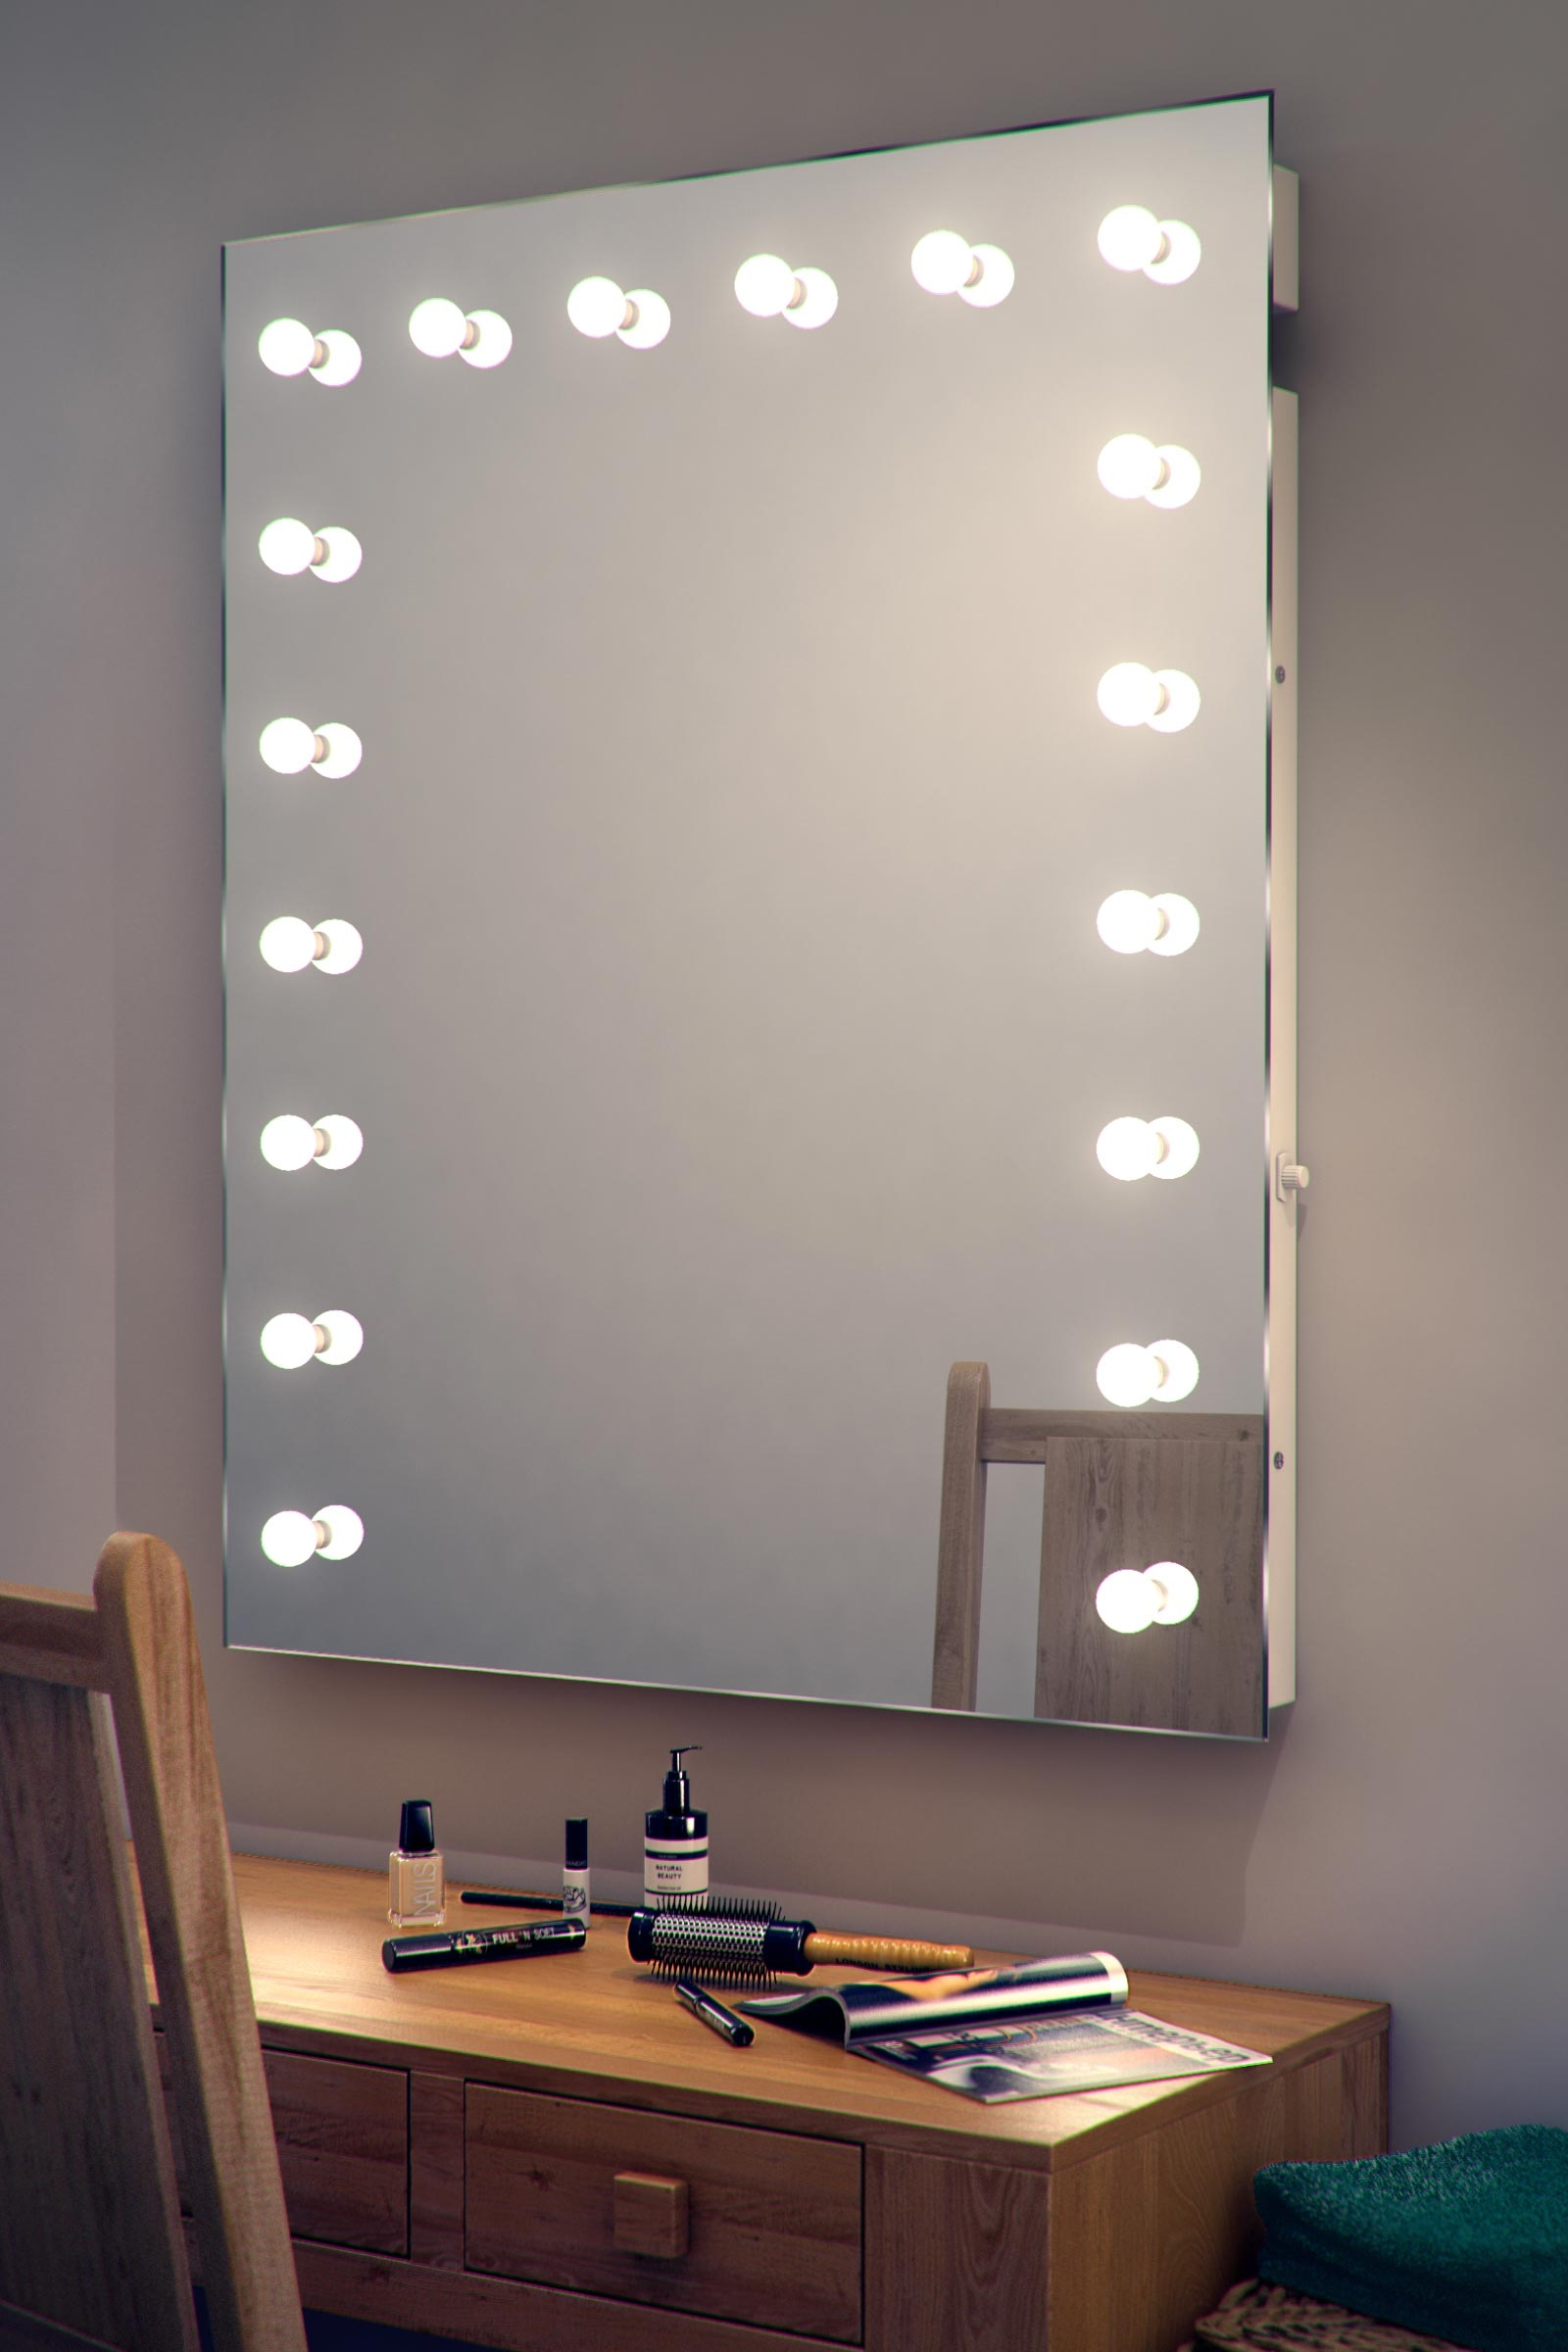 Hollywood Makeup Dressing Room Mirror With Dimmable Led Lamps Regarding Illuminated Dressing Table Mirrors (Image 12 of 15)